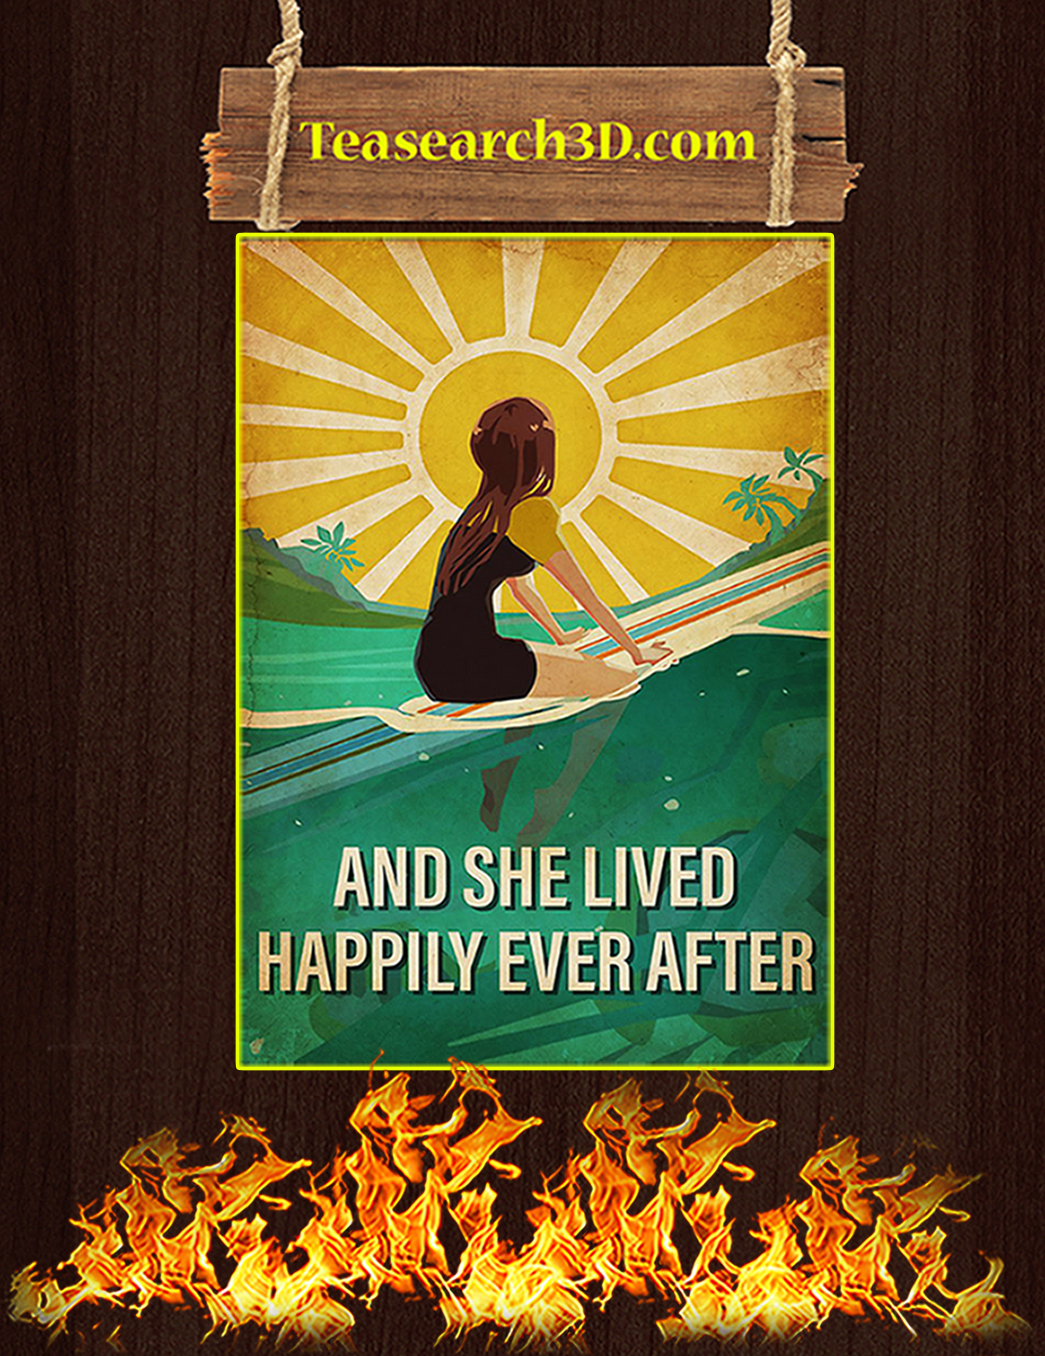 Surfing And she lived happily ever after poster A1